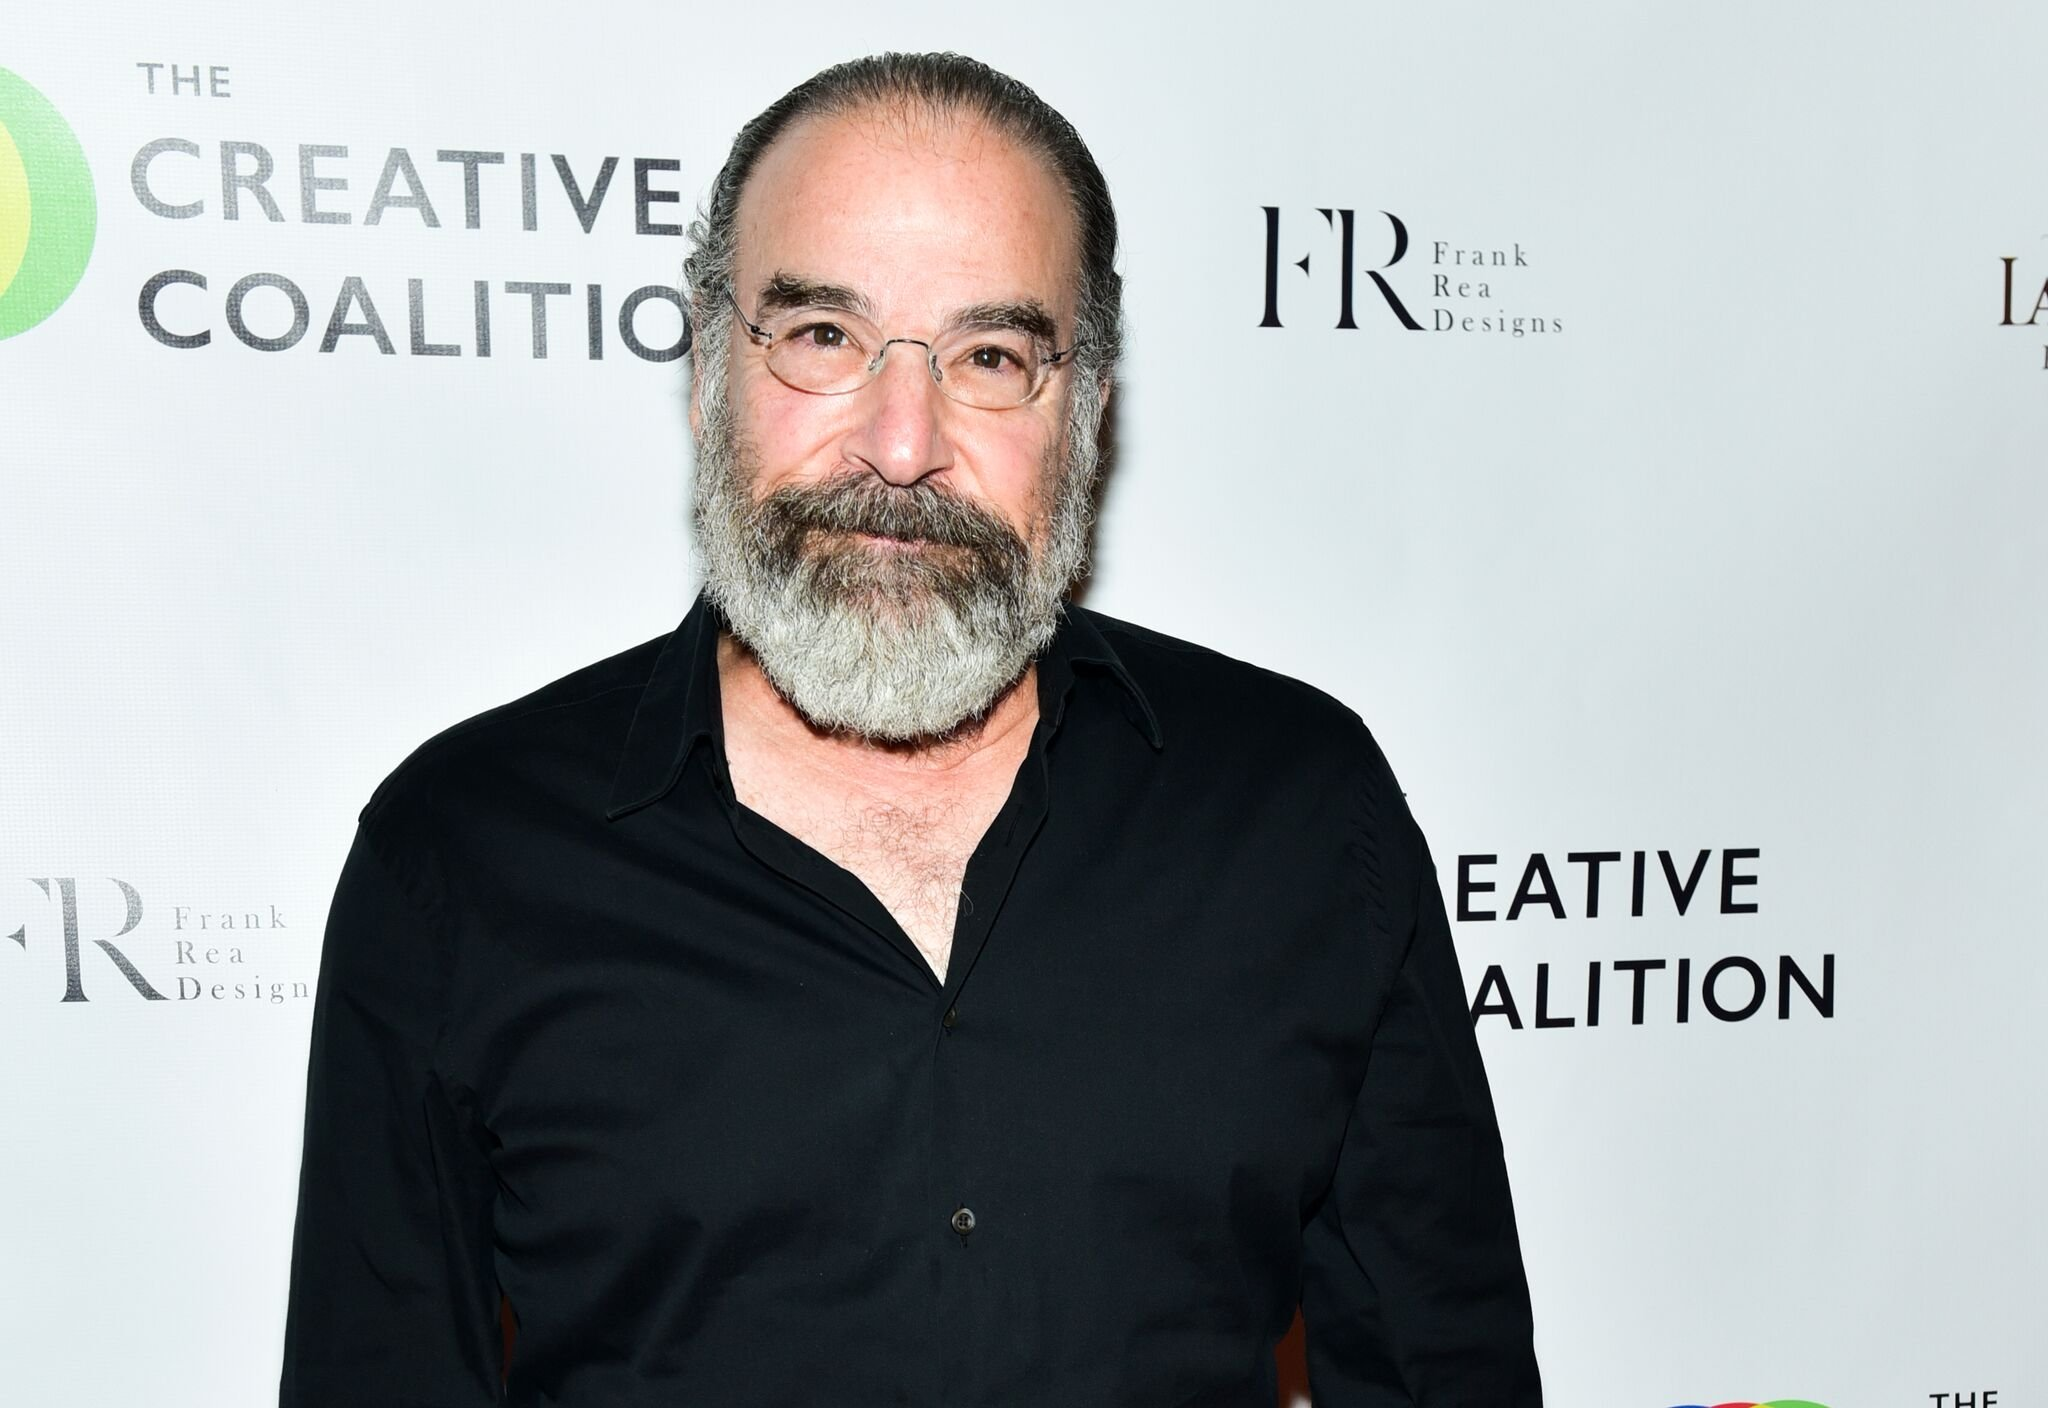 Mandy Patinkin attends the Creative Coalition 2018 Spotlight Initiative Gala Awards Dinner | Getty Images